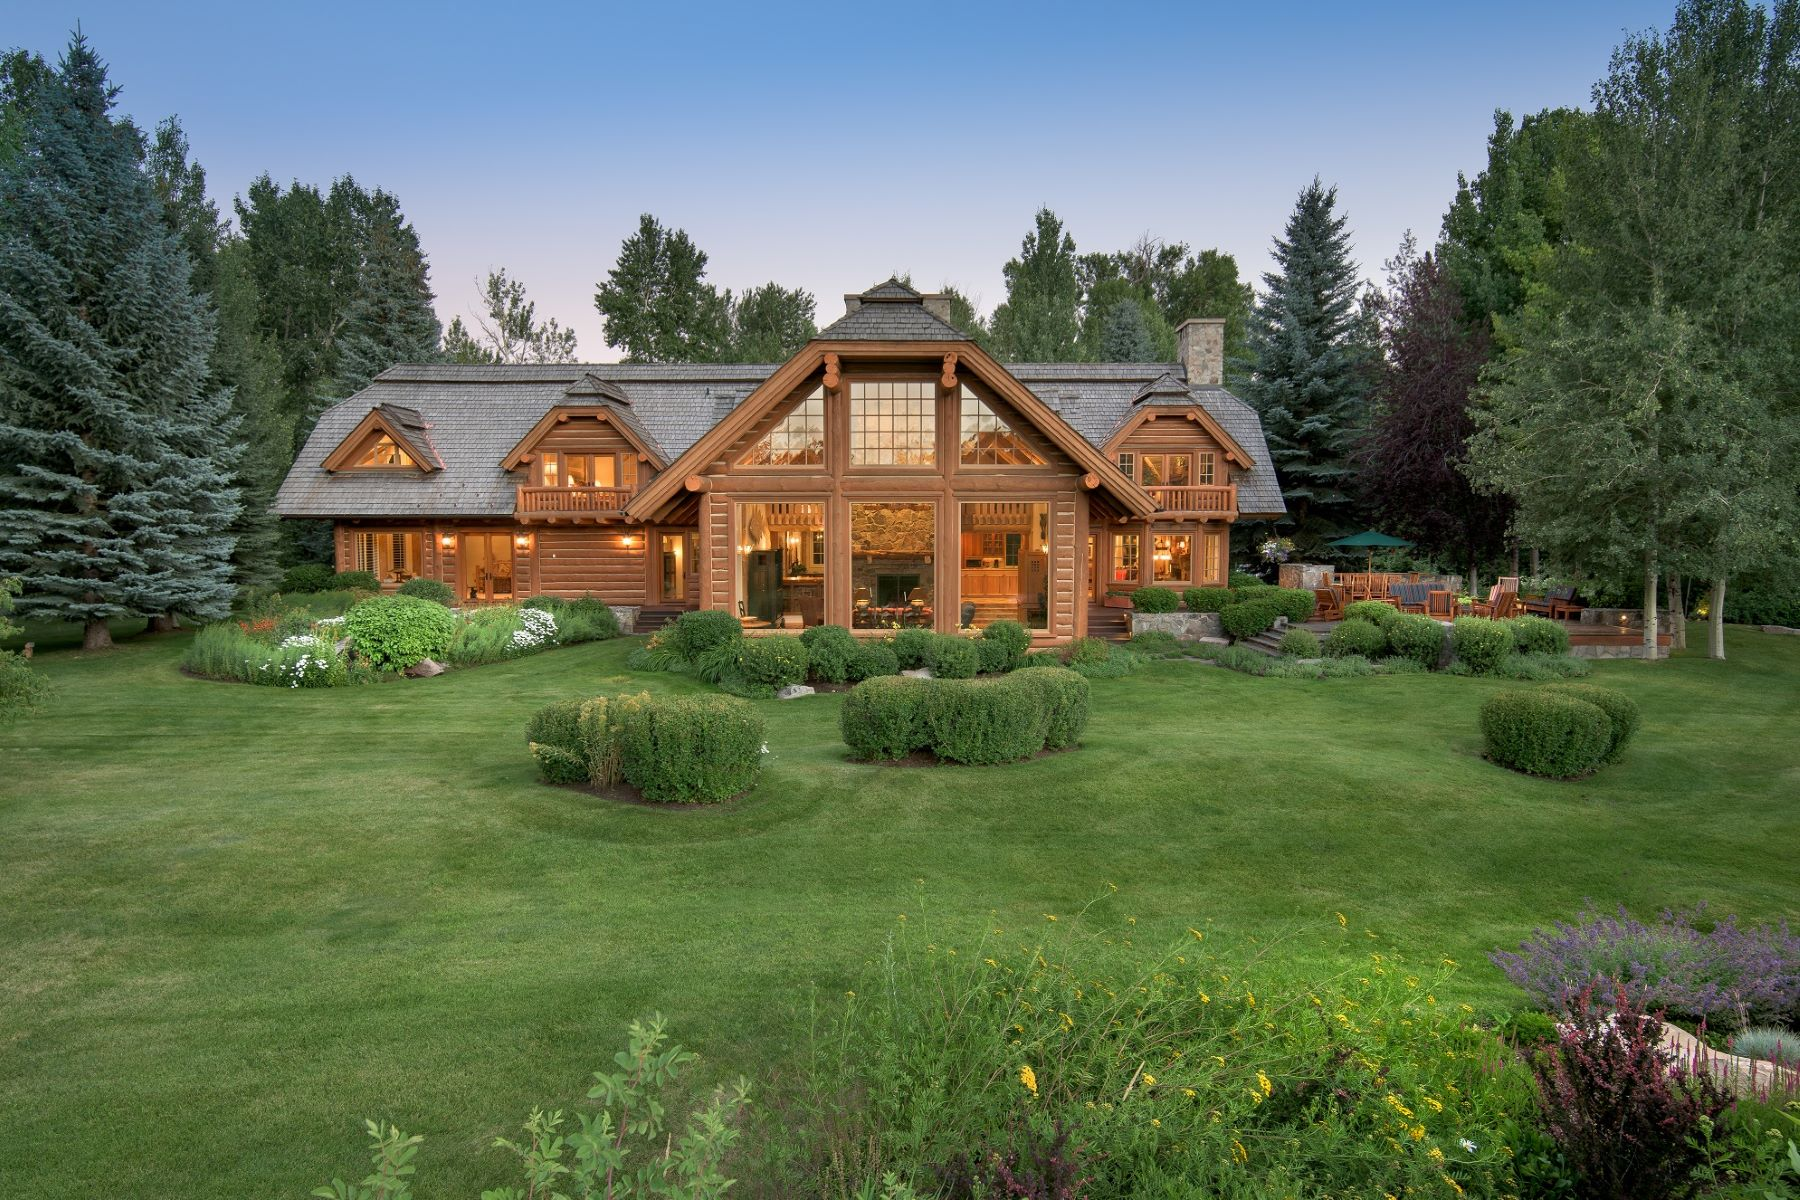 Single Family Homes for Sale at Lodge-style home with river access 30 Osprey Lane Hailey, Idaho 83333 United States